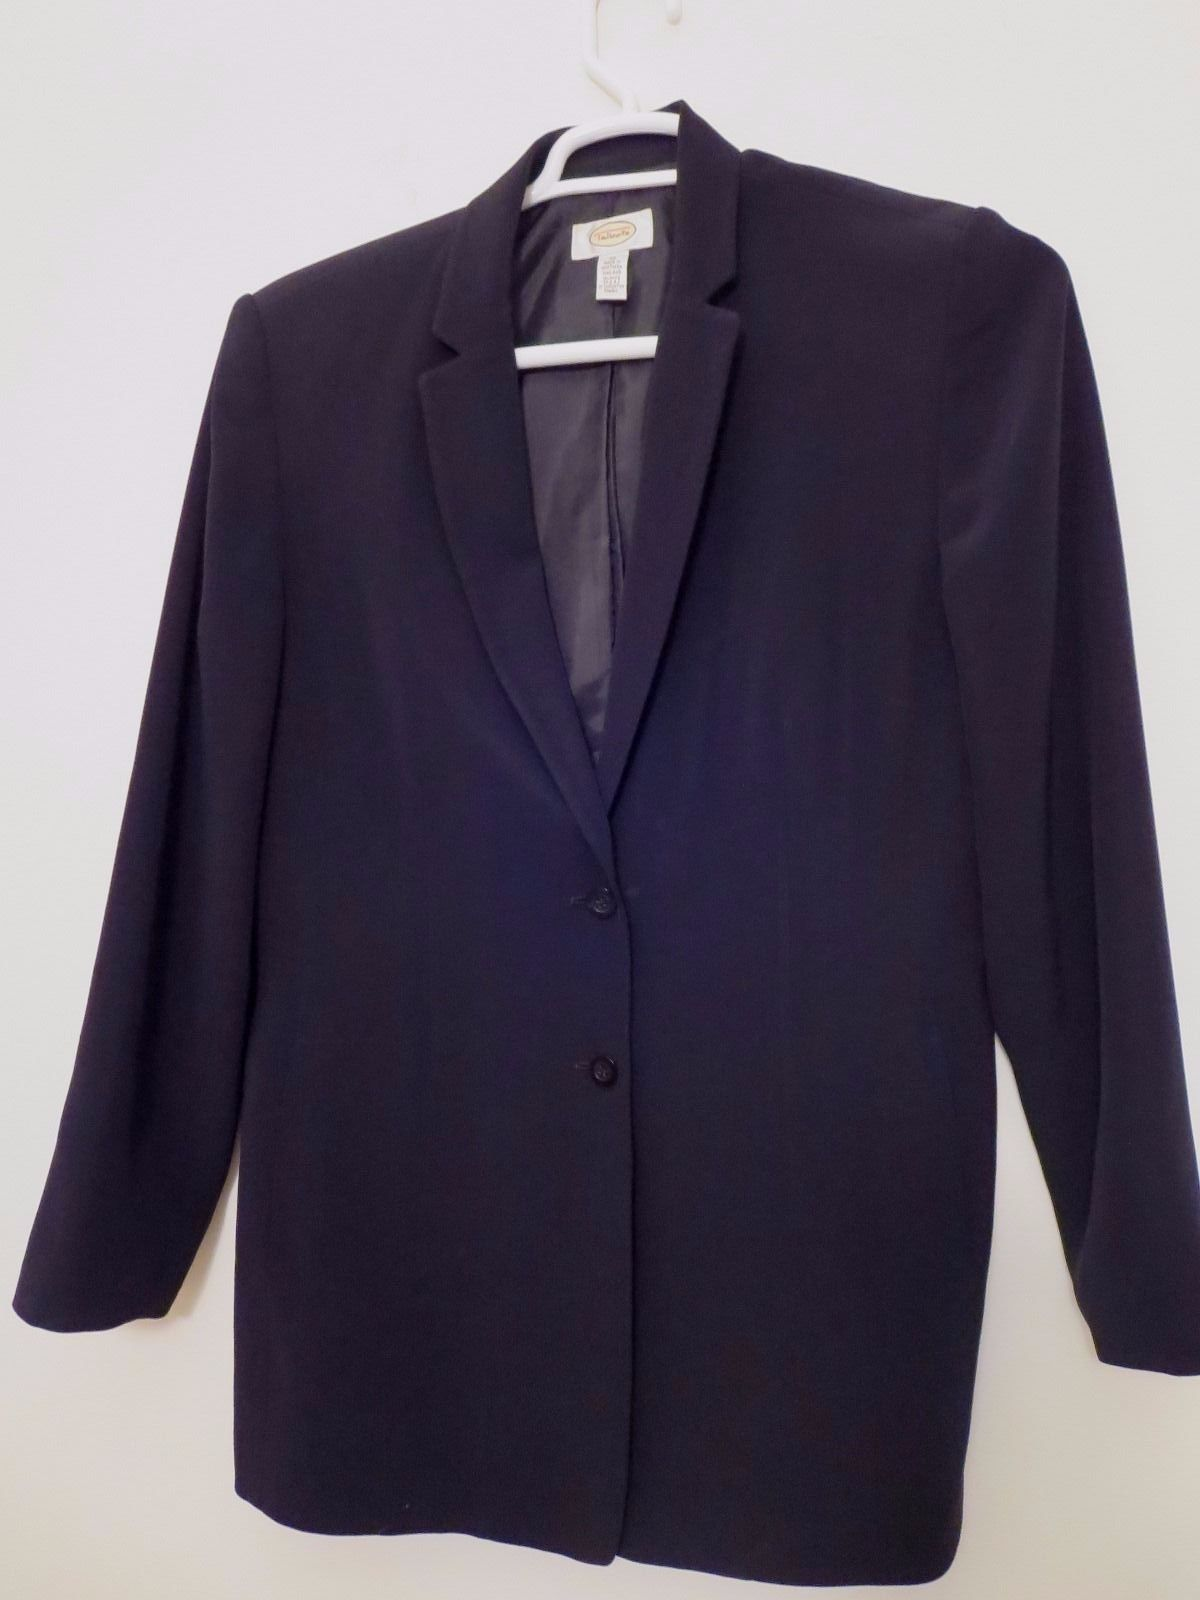 Talbots Women's Size 12 Two Button Black Blazer Excellent Condition High Quality